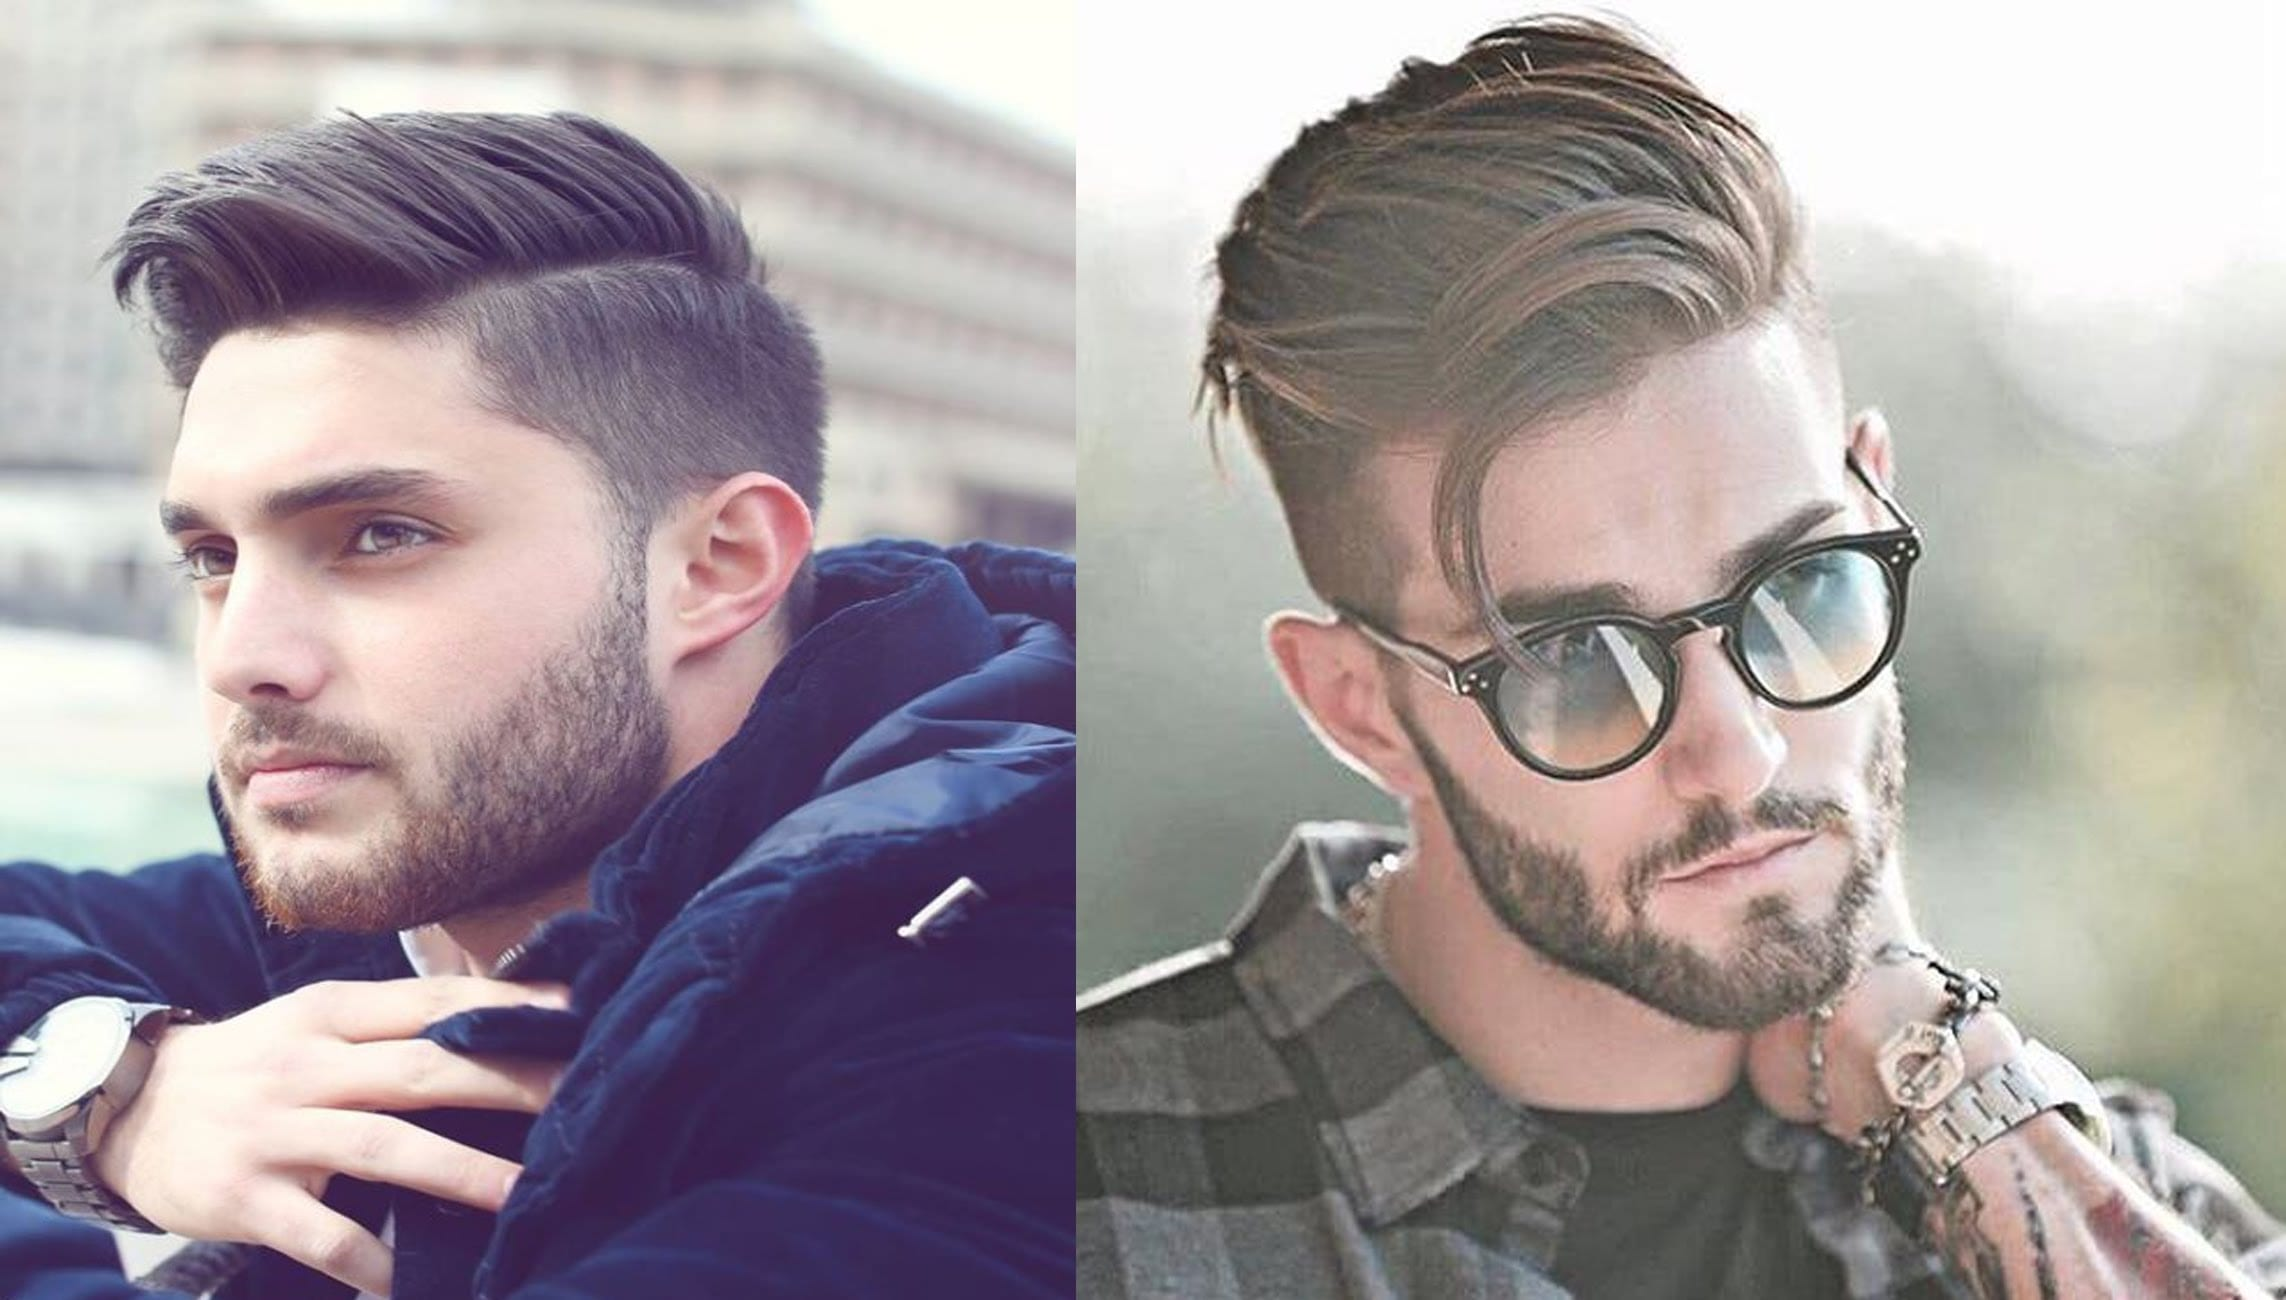 2016 Haircut Trends For Men 12 Amazing Hairstyles For This Summer For Men 2016 Youtube